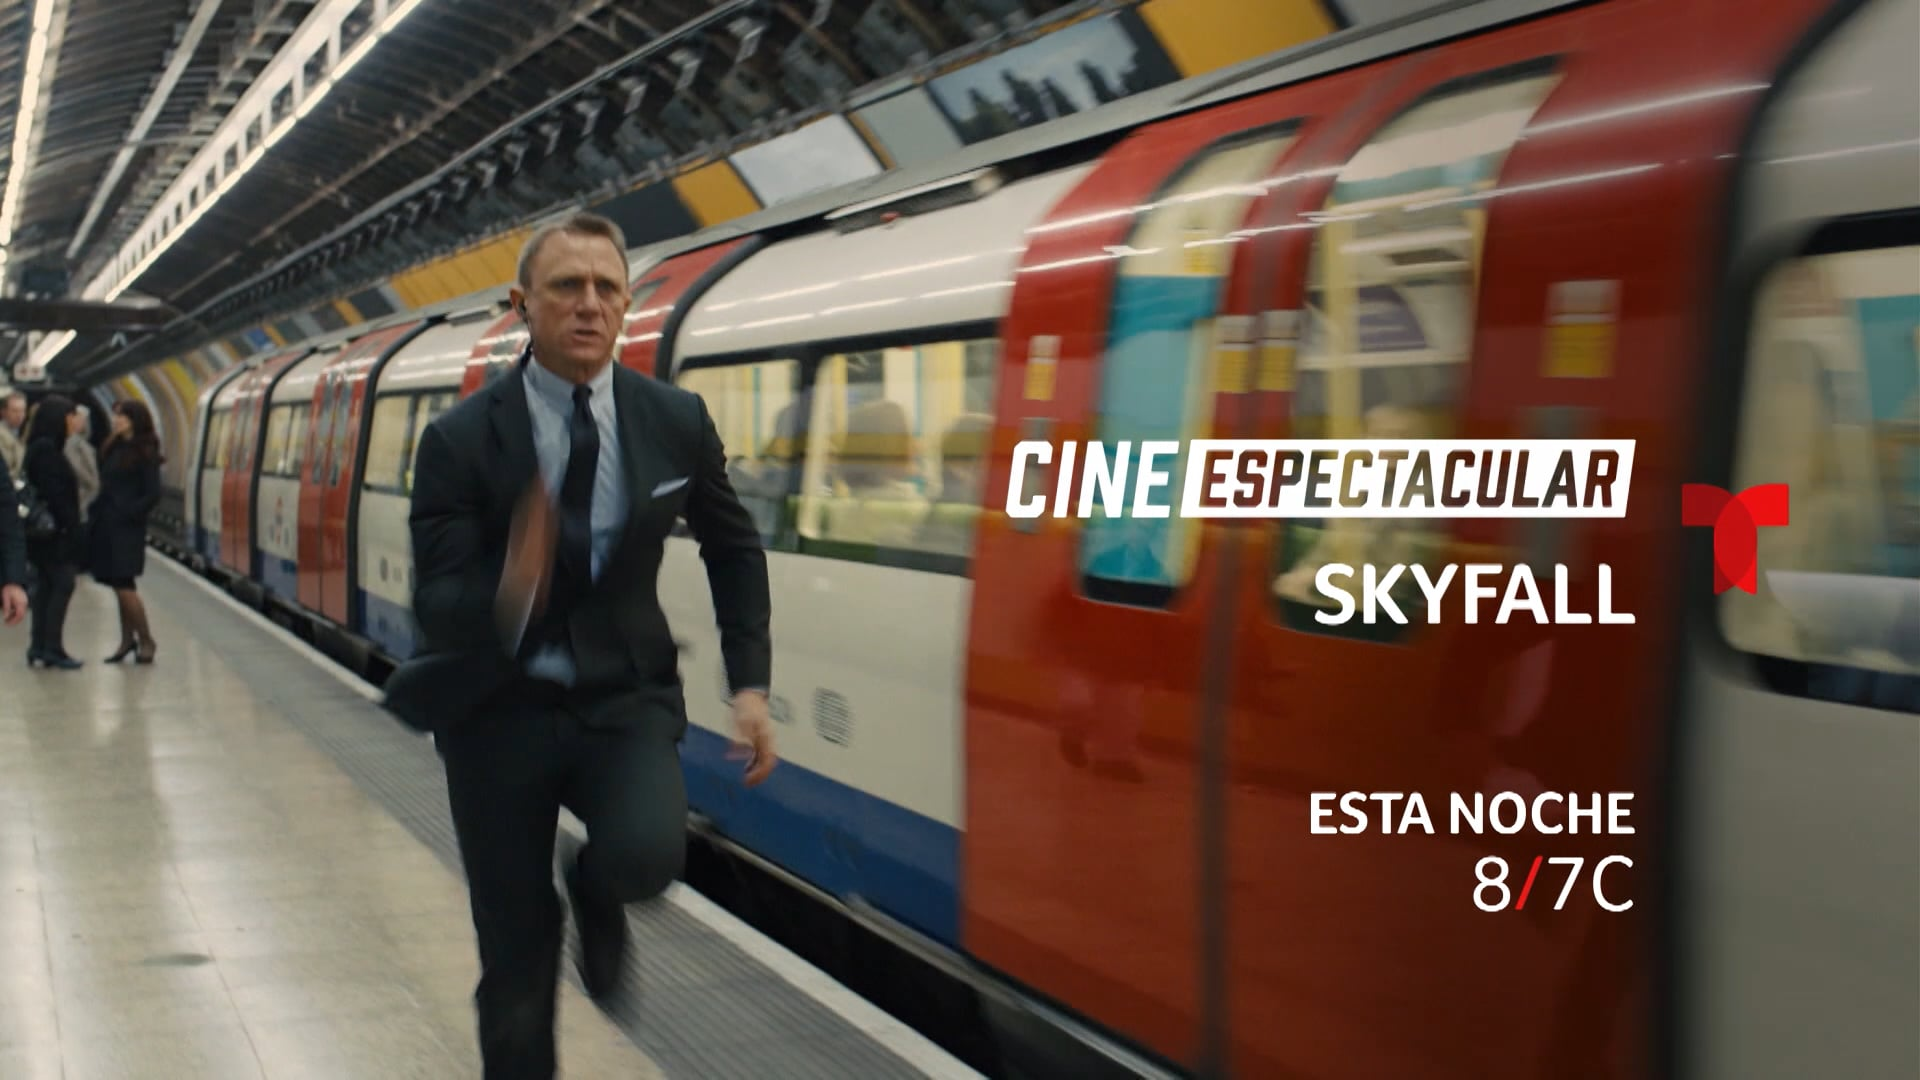 CINE ESPECTACULAR: SKYFALL – TUNE-IN